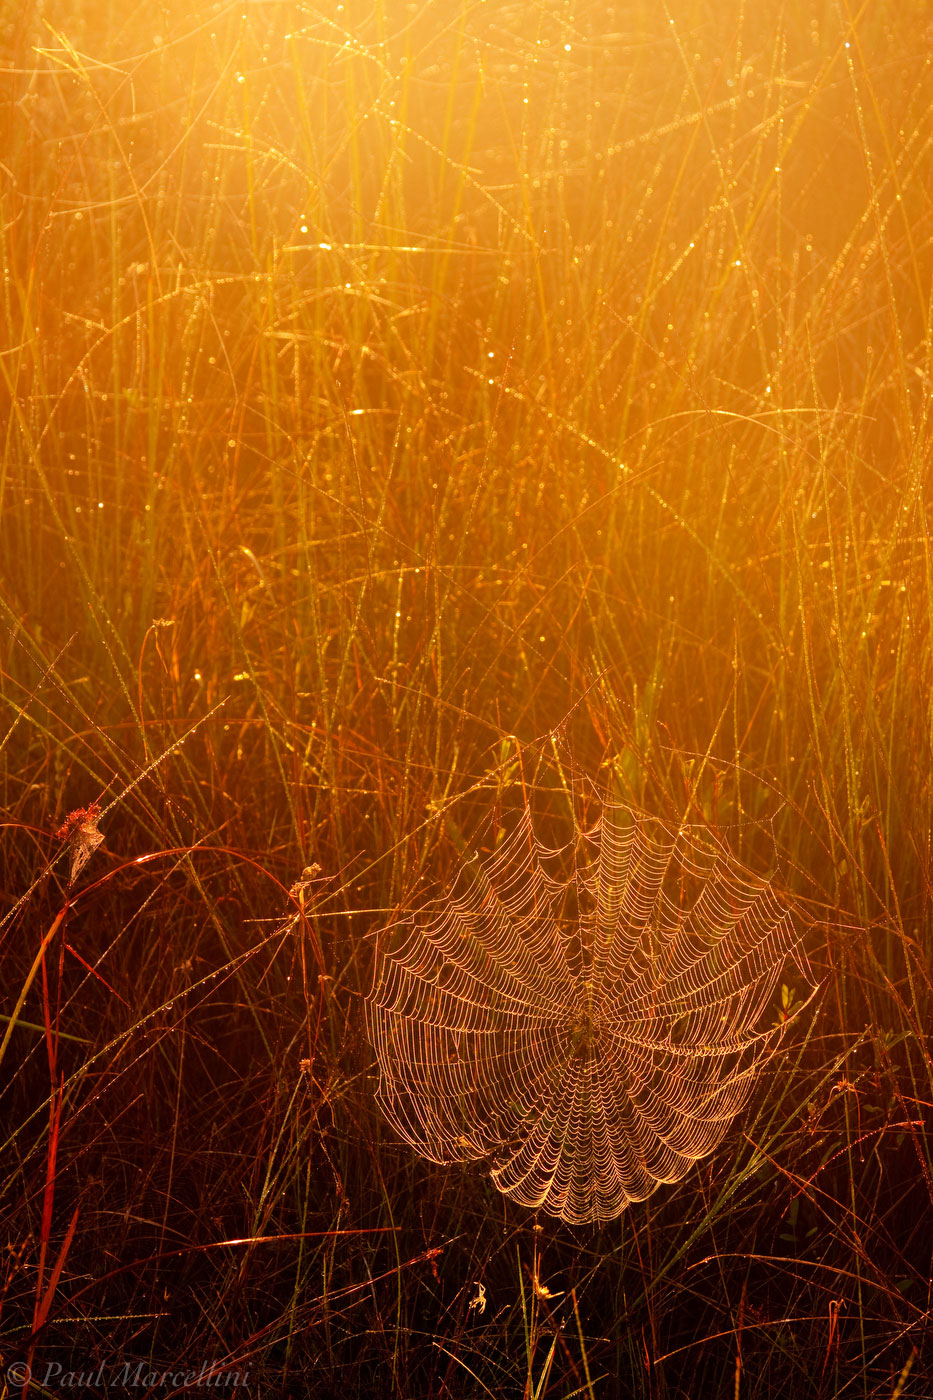 spiderweb, everglades, morning, dew, Florida, nature, photography, florida national parks, photo